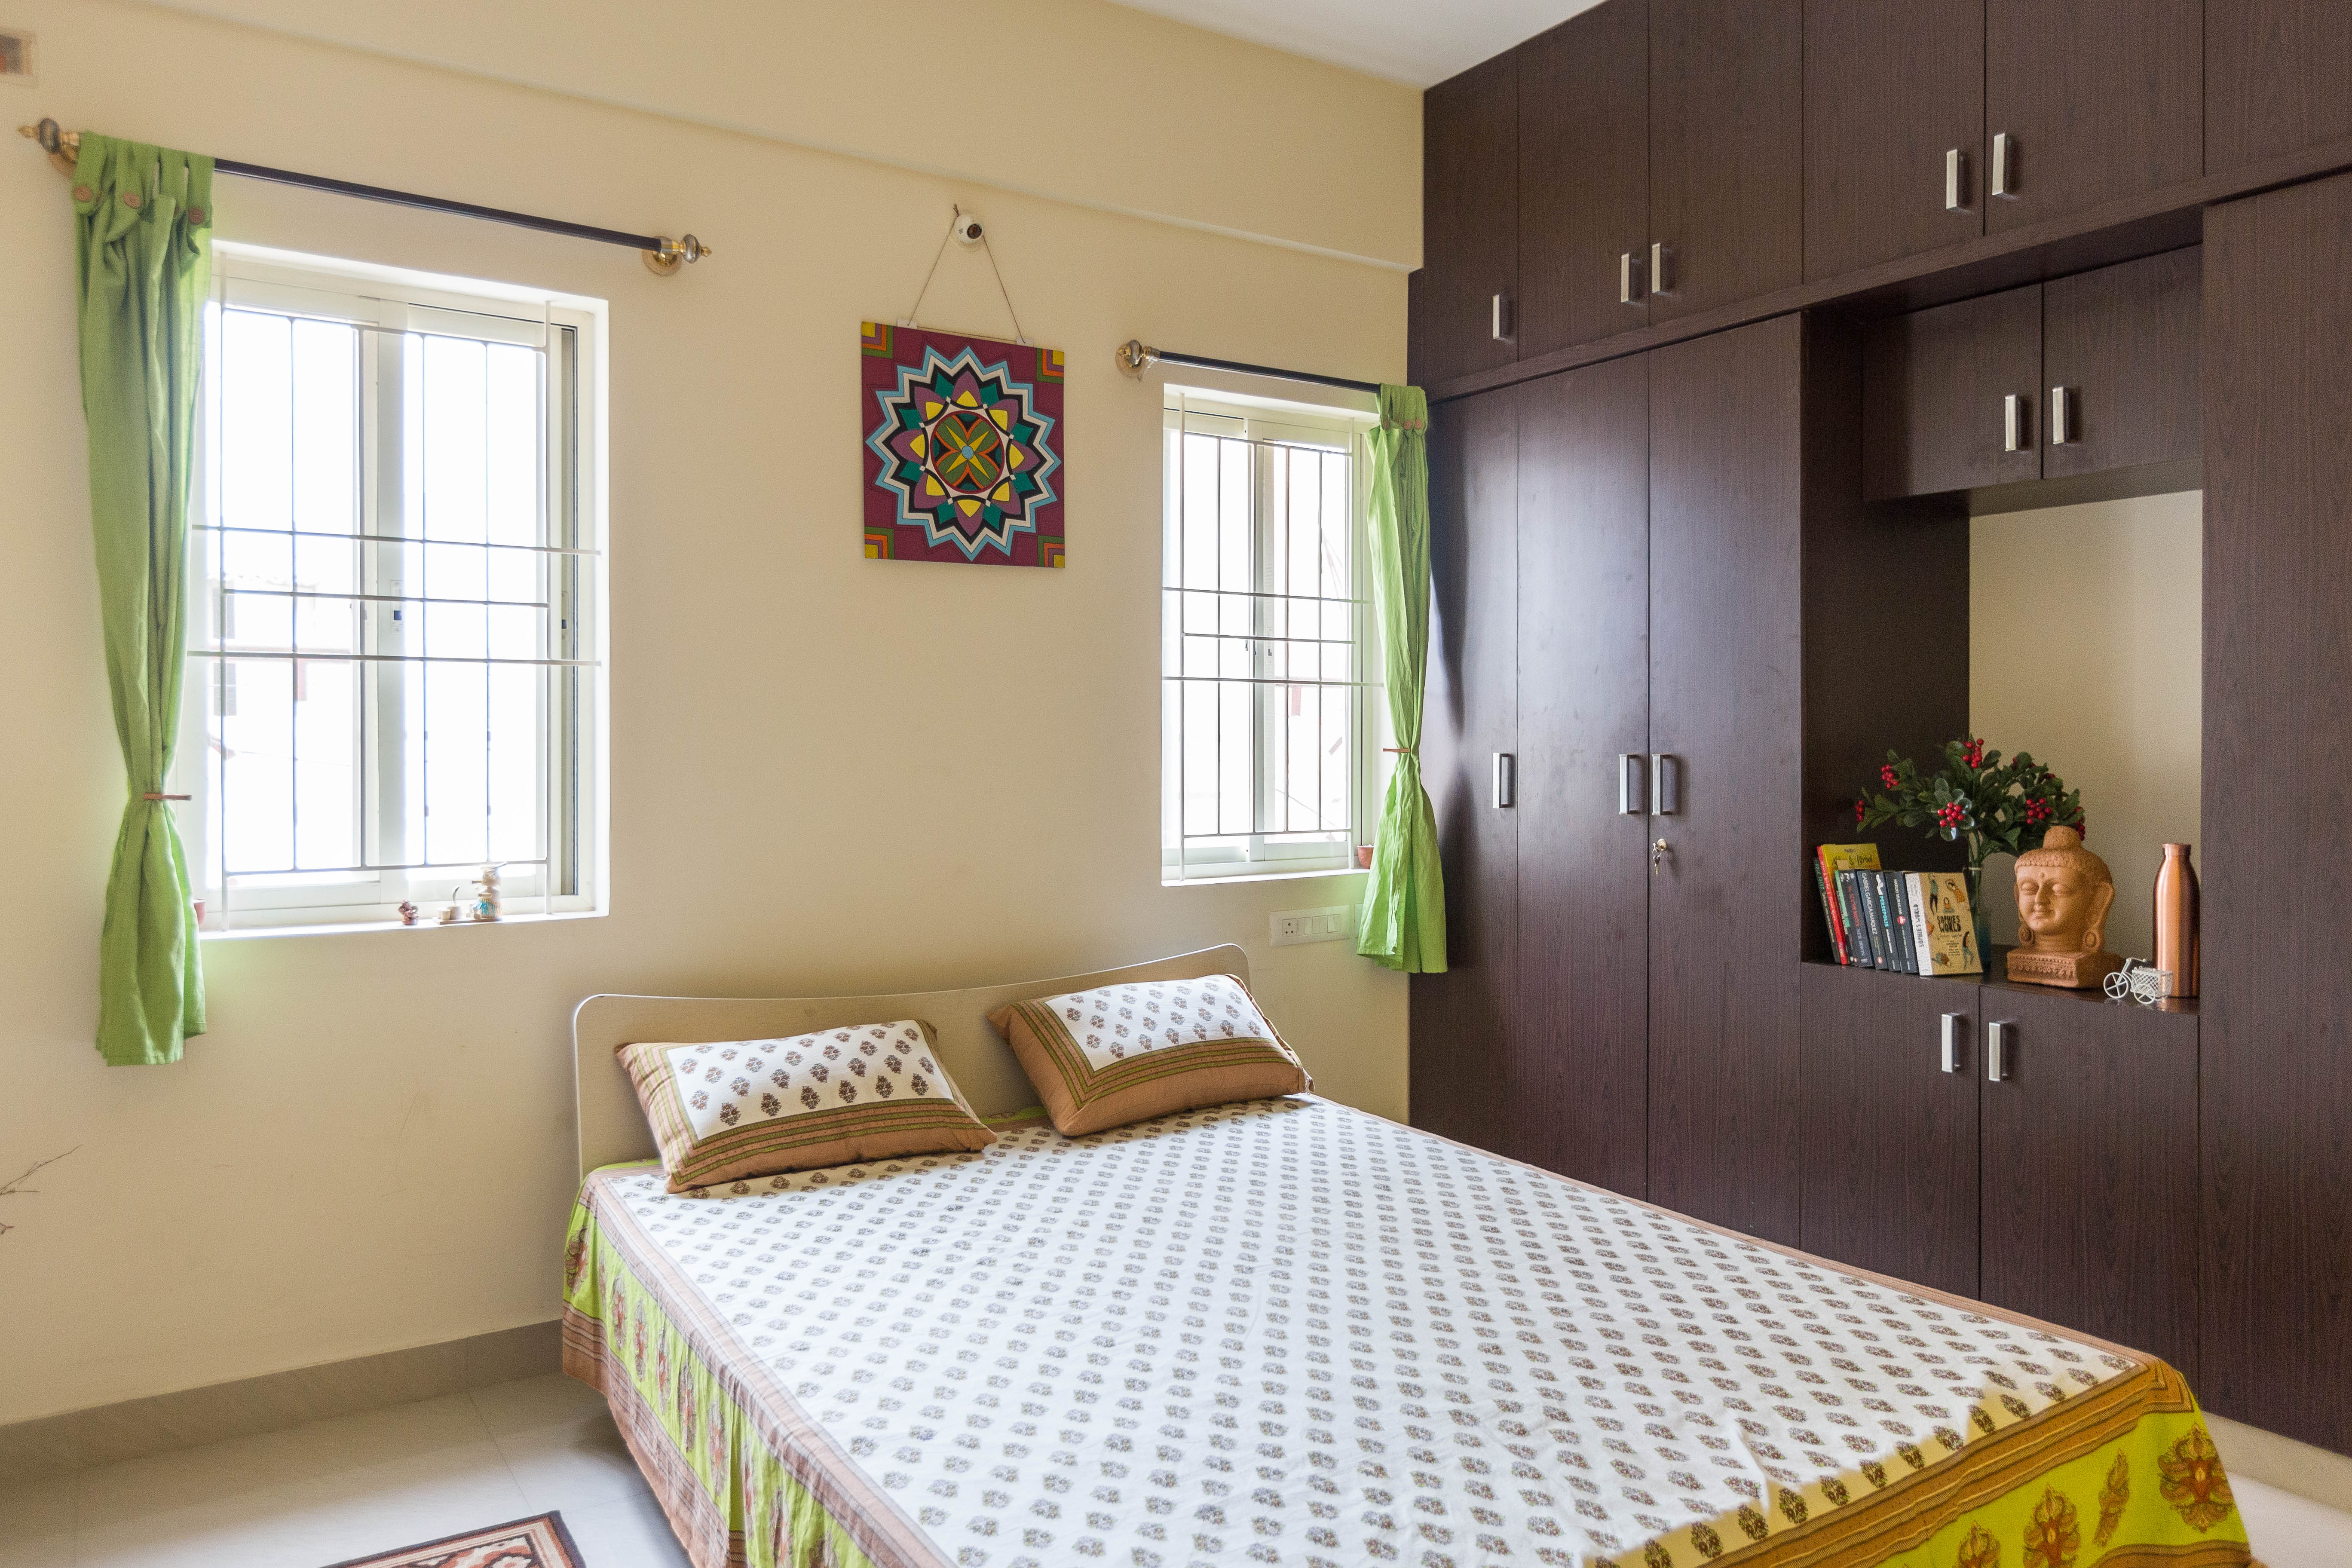 Safe And Cozy Private Room For Women Only Apartments For Rent In Bangalore Karnataka India